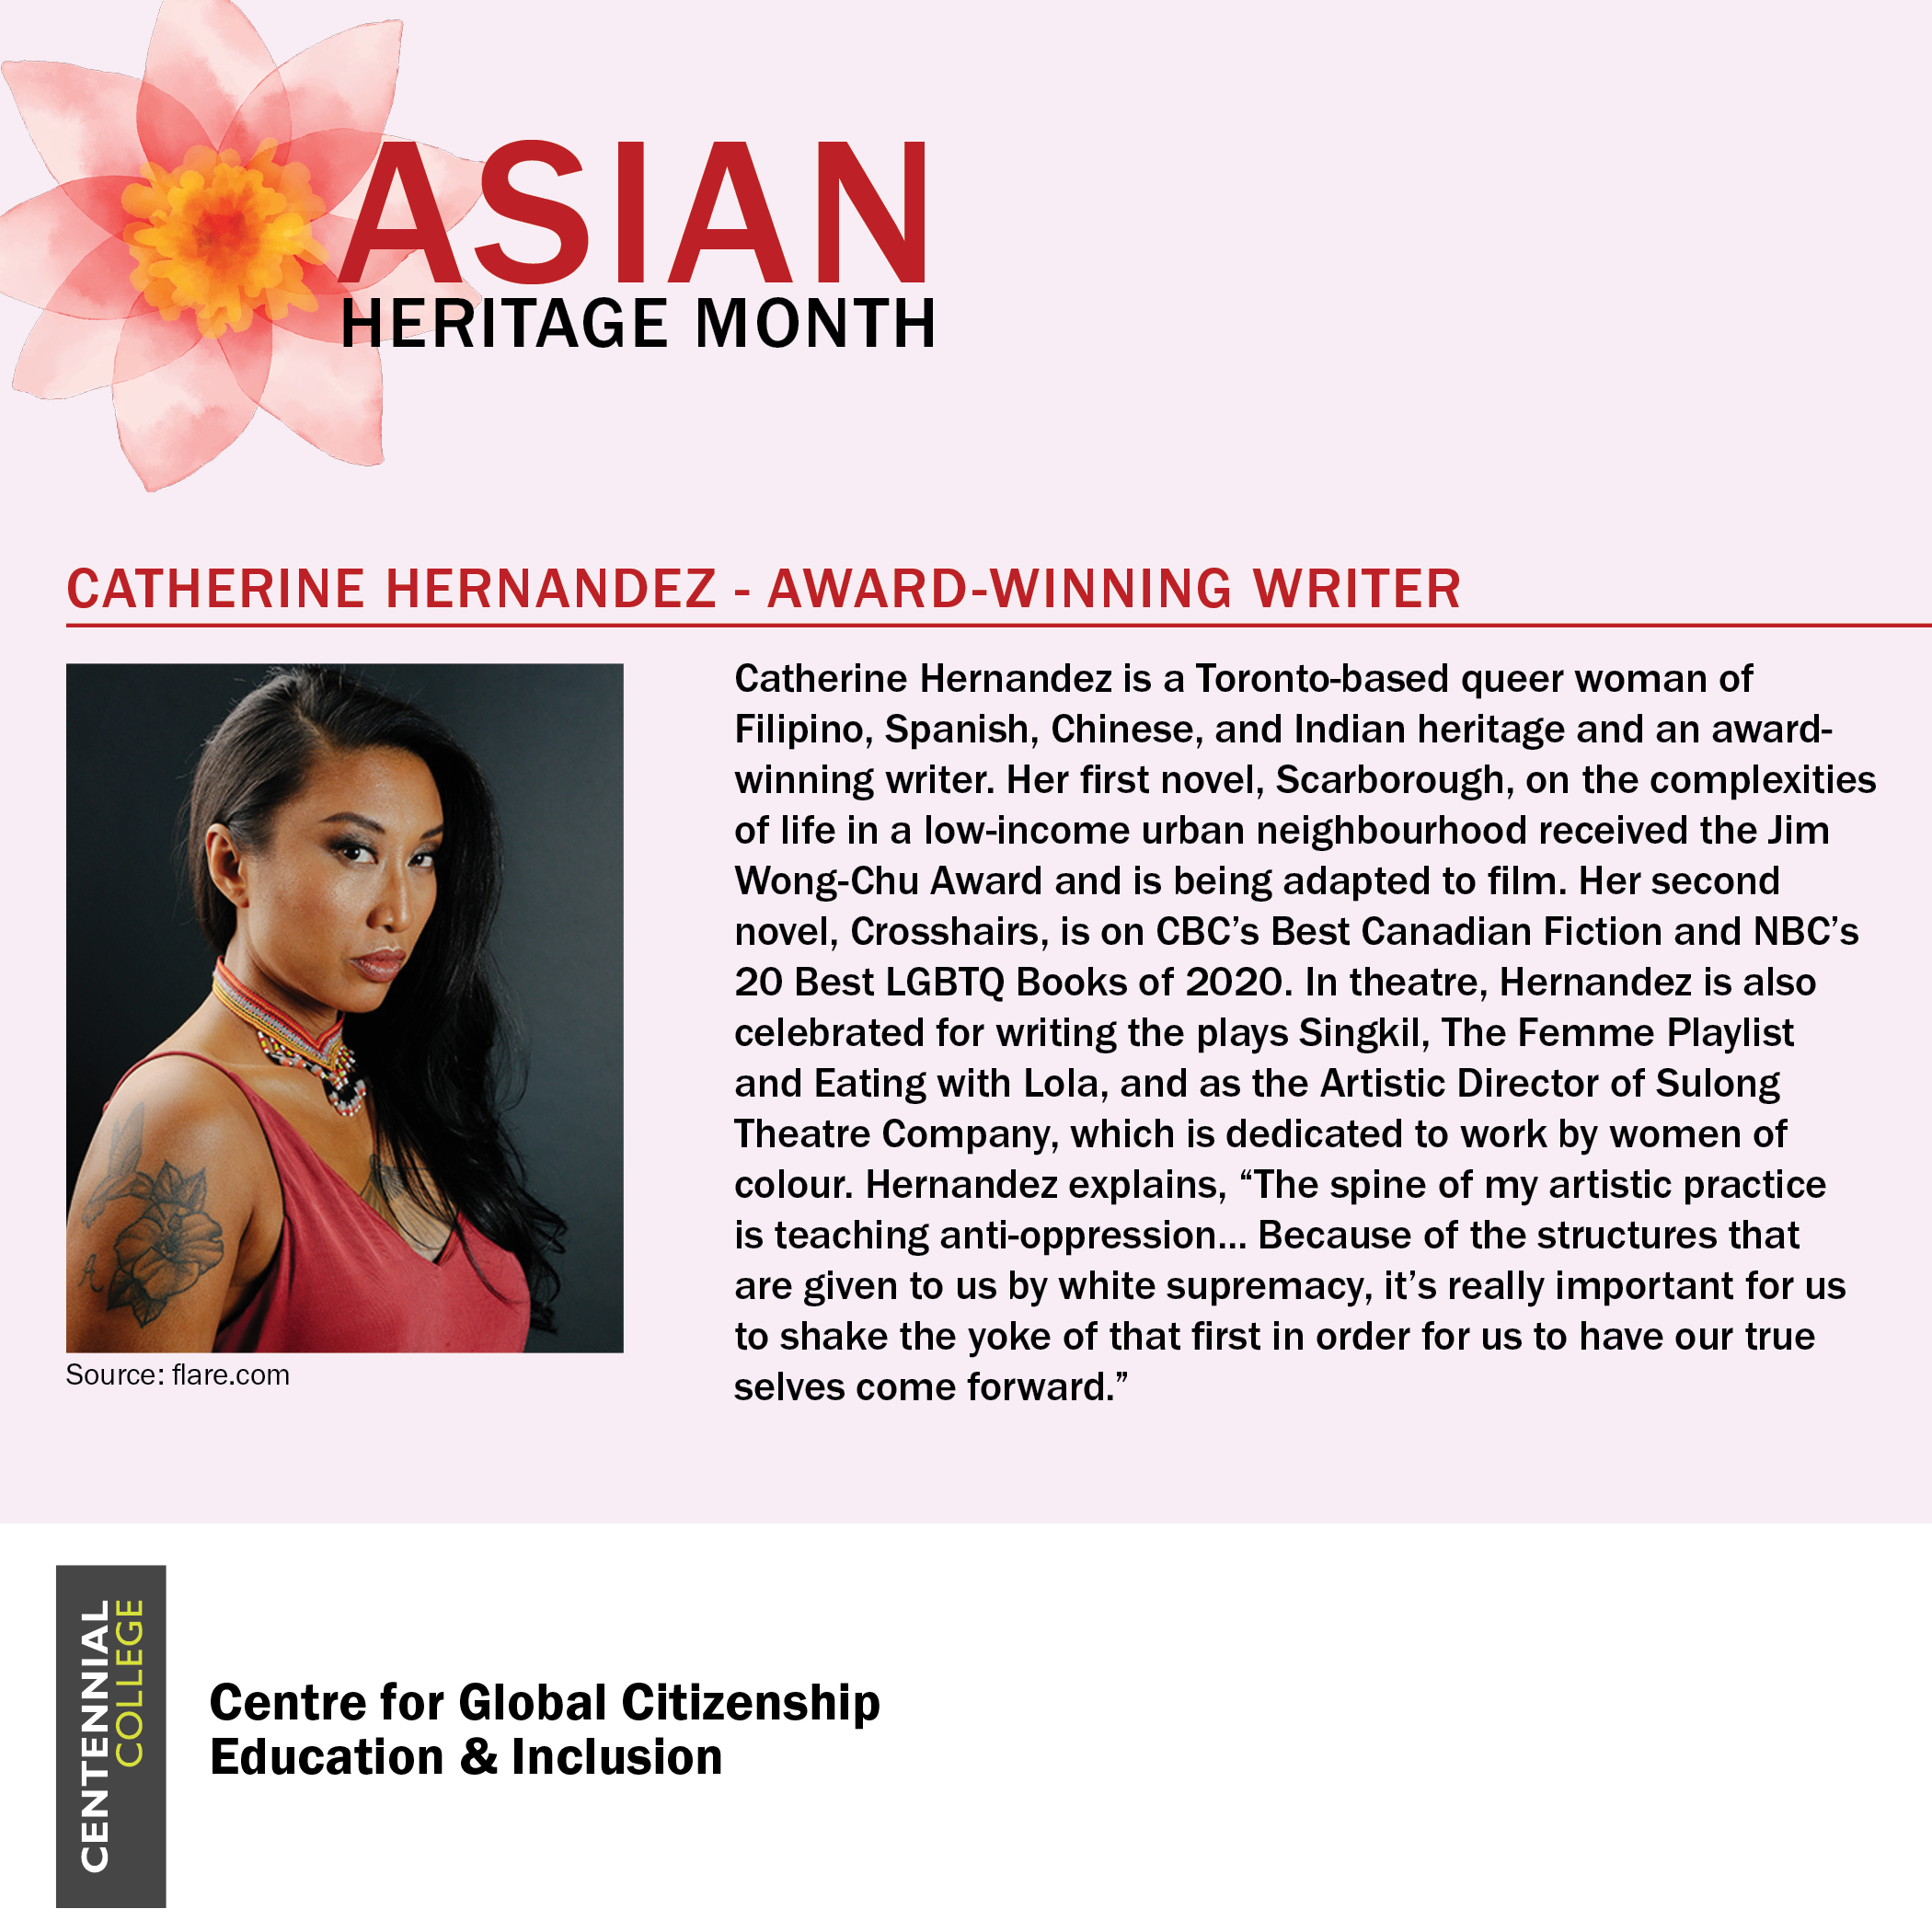 """Asian Heritage Month spotlight on Catherine Hernandez - Award-winning writer. There is a photo of Catherine Hernandez accompanied by the following text: Catherine Hernandez is a Toronto-based queer woman of Filipino, Spanish, Chinese, and Indian heritage and an award-winning writer. Her first novel, Scarborough, on the complexities of life in a low-income urban neighborhood received the Jim Wong-Chu Award and is being adapted to film. Her second novel, Crosshairs, is on CBC's Best Canadian Fiction and NBC's 20 Best LGBTQ Books of 2020. In theatre, Hernandez is also celebrated for writing the plays Singkil, The Femme Playlist and Eating with Lola, and as the Artistic Director of Sulong Theatre Company, which is dedicated to work by women of colour. Hernandez explains, """"The spine of my artistic practice is teaching anti-oppression... Because of the structures that are give to us by white supremacy, it's really important for us to shake the yoke of that first in order for us to have our true selves come forward."""""""